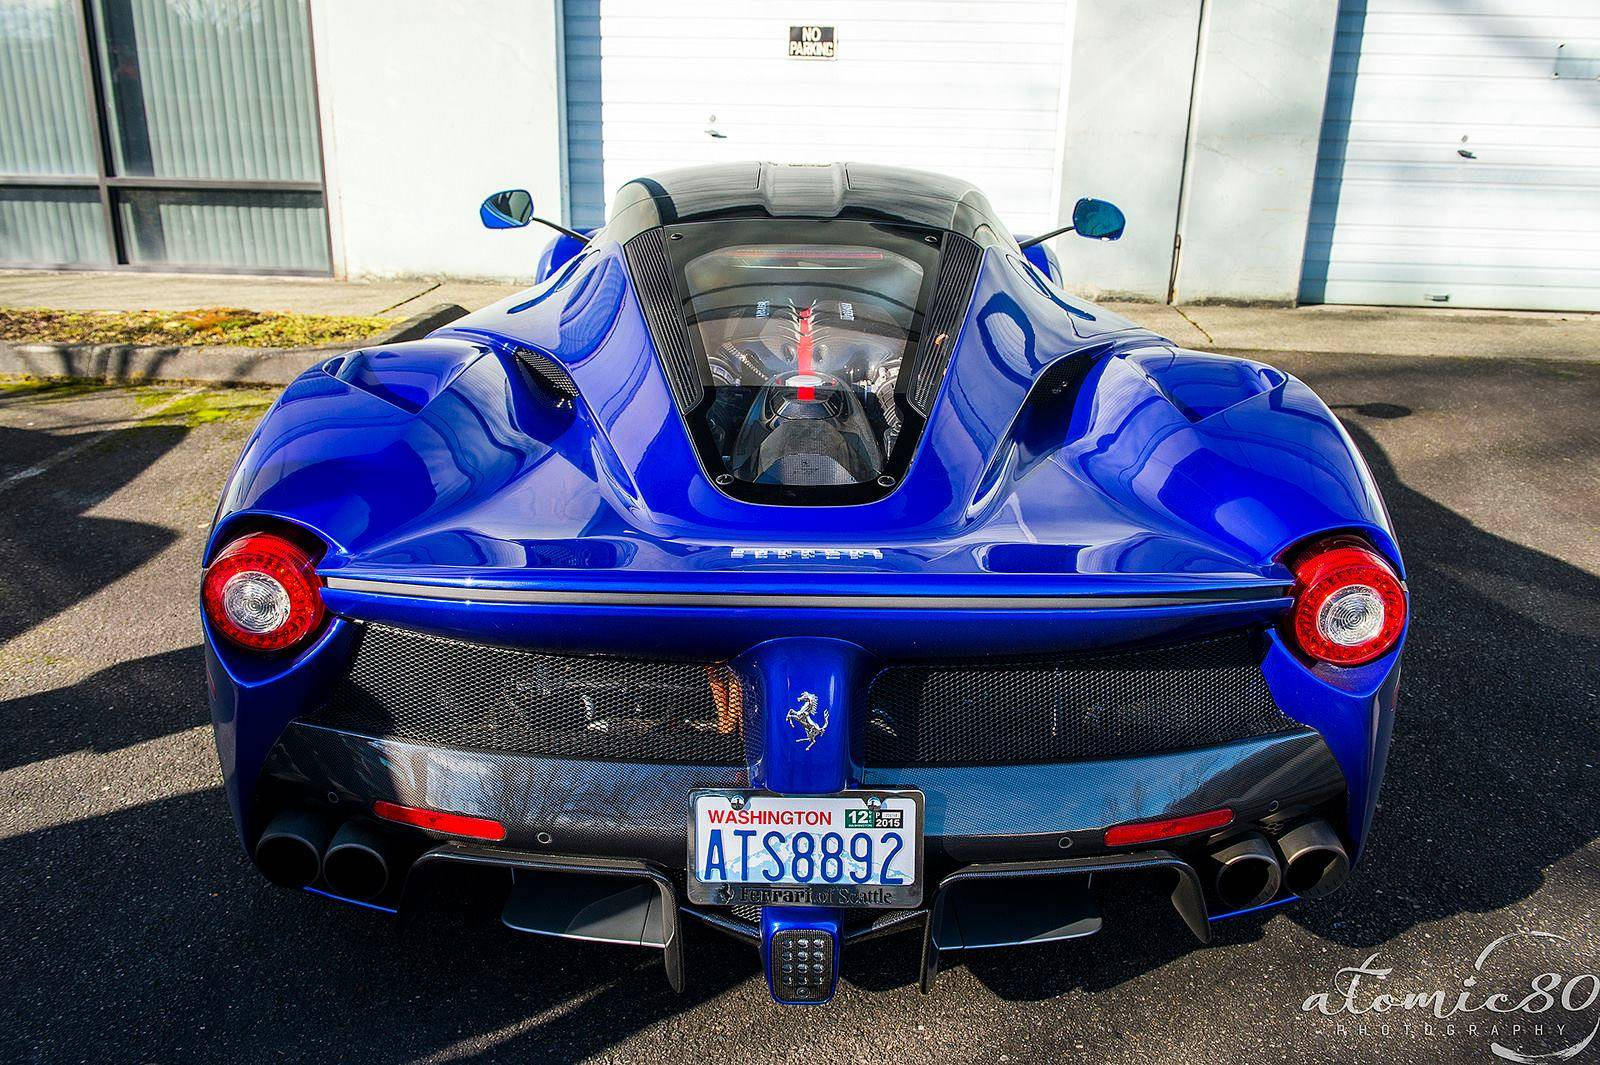 make ferrari ago laferrari usa few just now revs s its back starting rear states sale to months like aperta in a way united it first september new monster the for but seattle unveiled